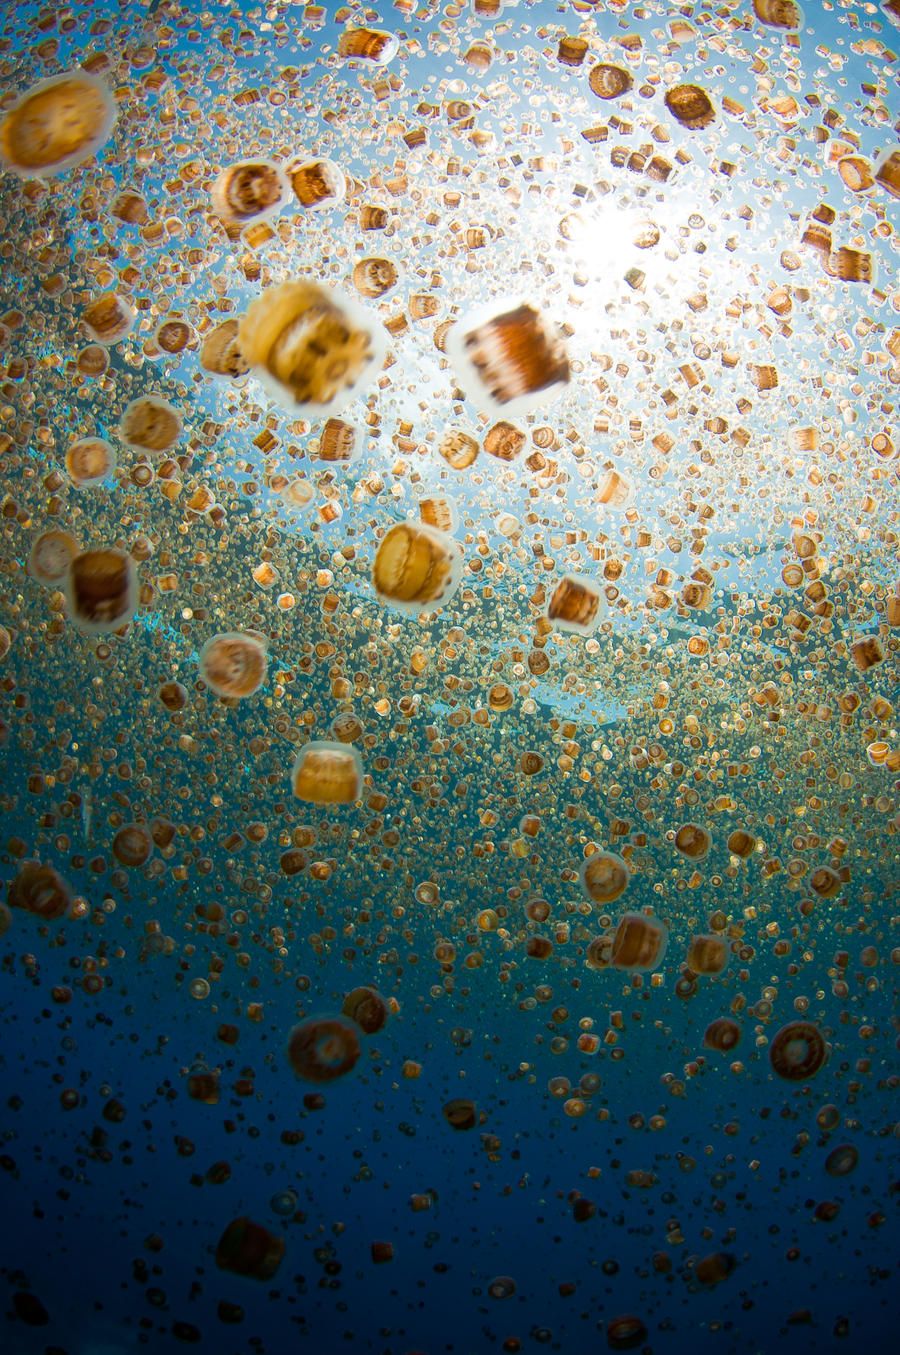 Jellyfish Bloom by leighd